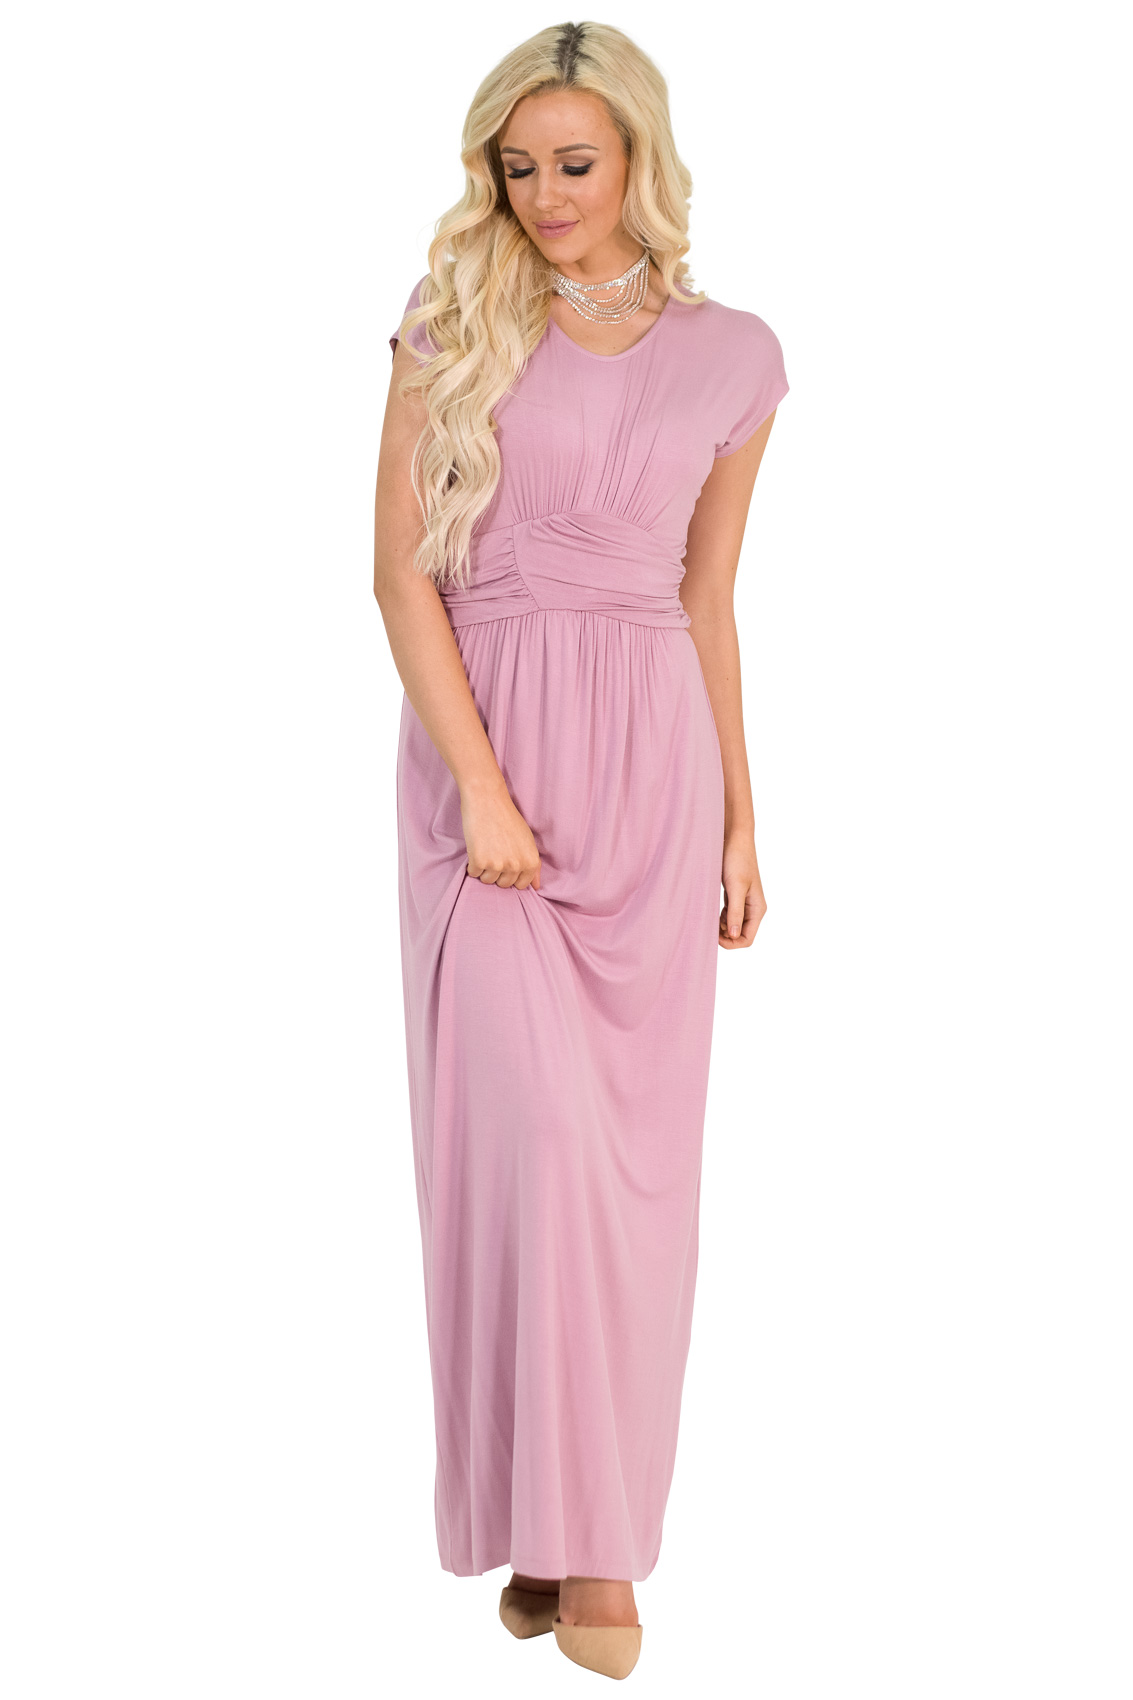 2b65758d435 Athena Modest Maxi Dress or Bridesmaid Dress - Mauve   Dusty Rose Pink   RESTOCKED